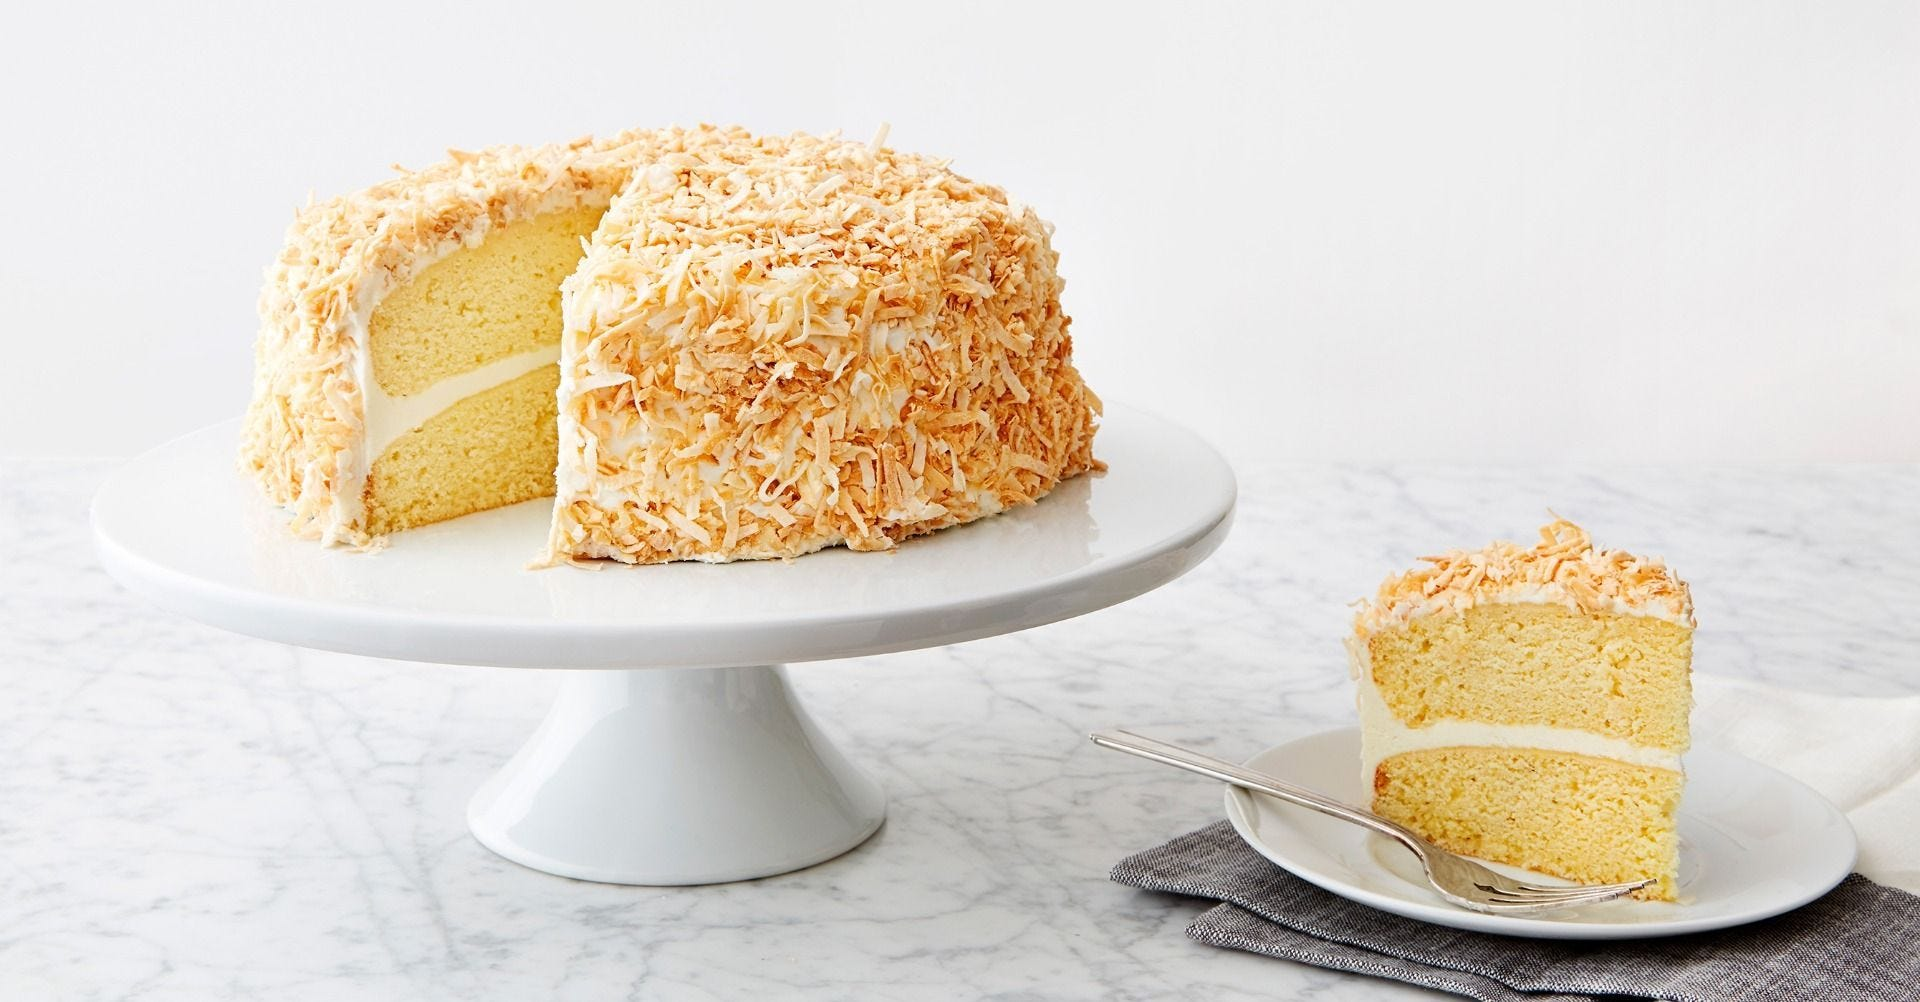 Coconut Cake with Toasted Flakes recipe.